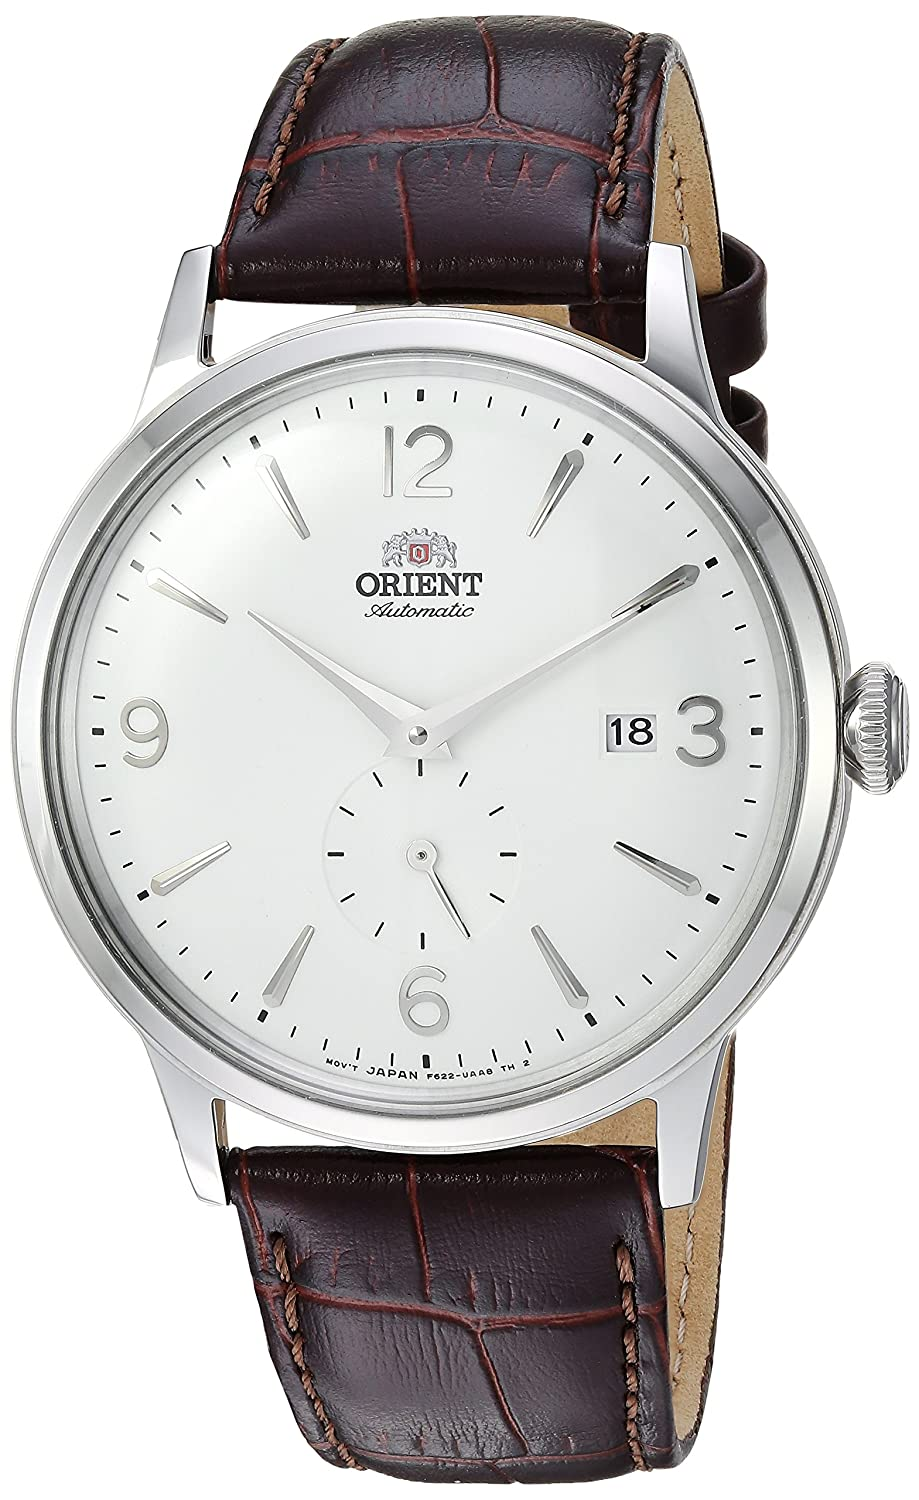 Orient Men 's ' Bambino Small Seconds ' Japanese AutomaticステンレススチールandレザーDress Watch, Color : Brown (Model : ra-ap0002s10 a) B07B4B78CJ